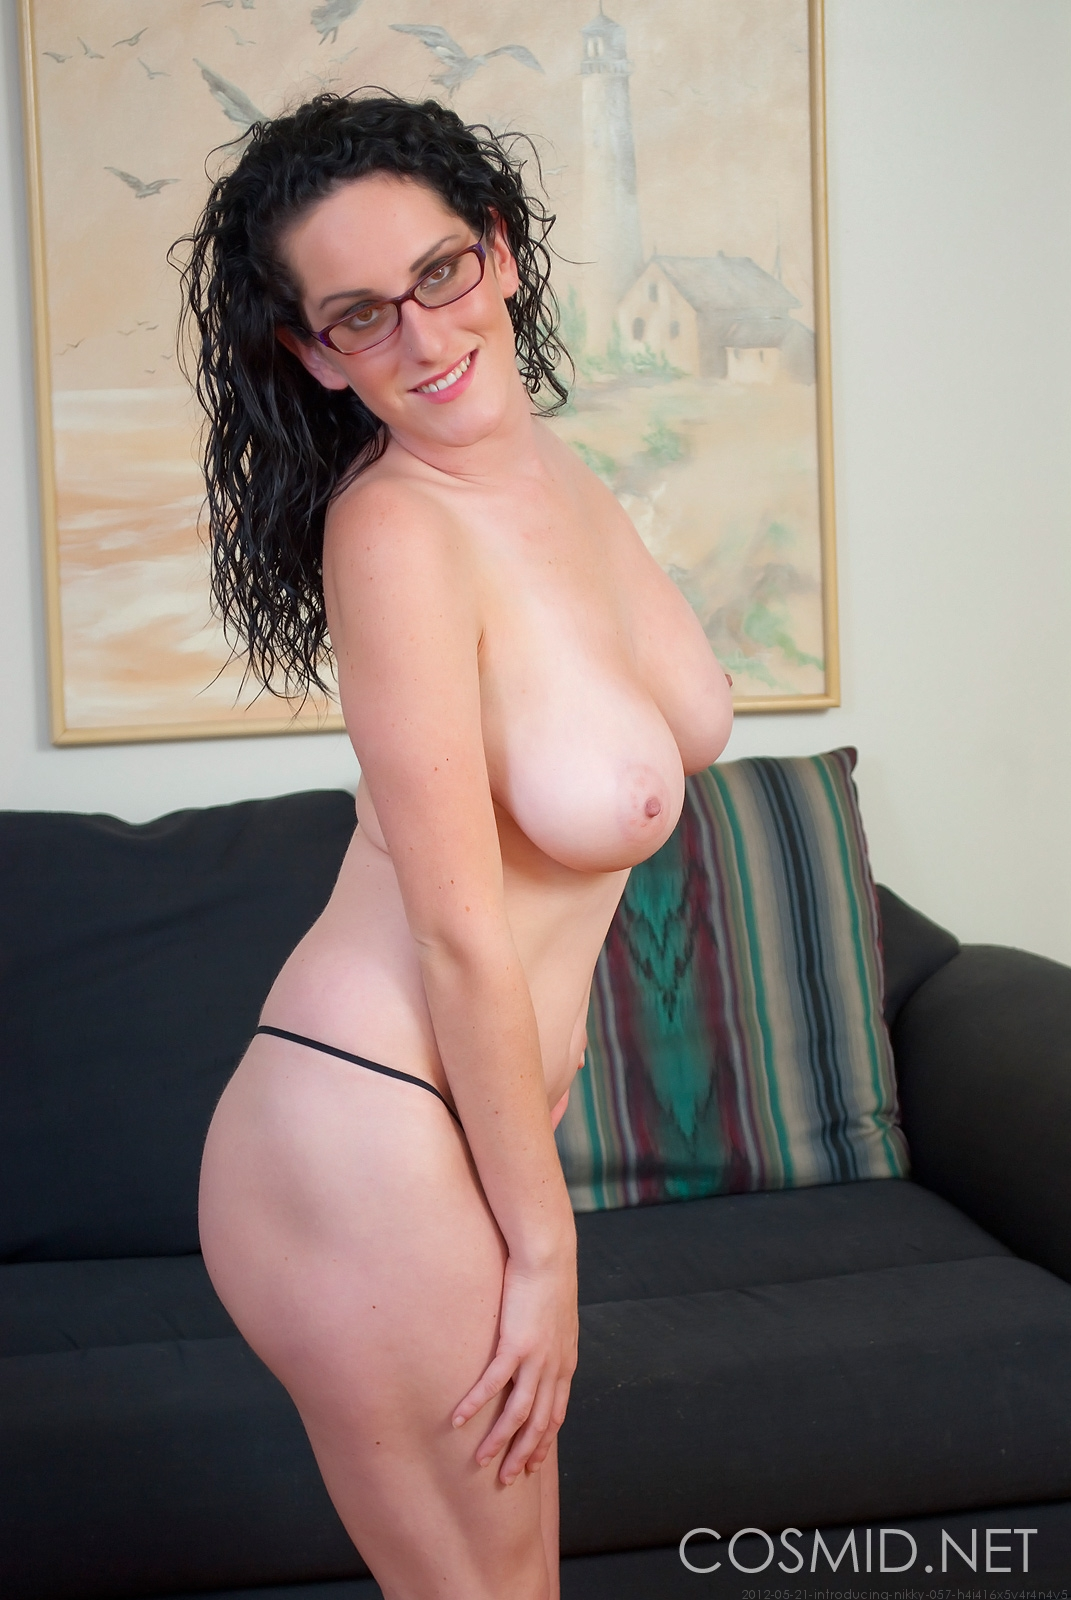 big glasses Cosmid tits